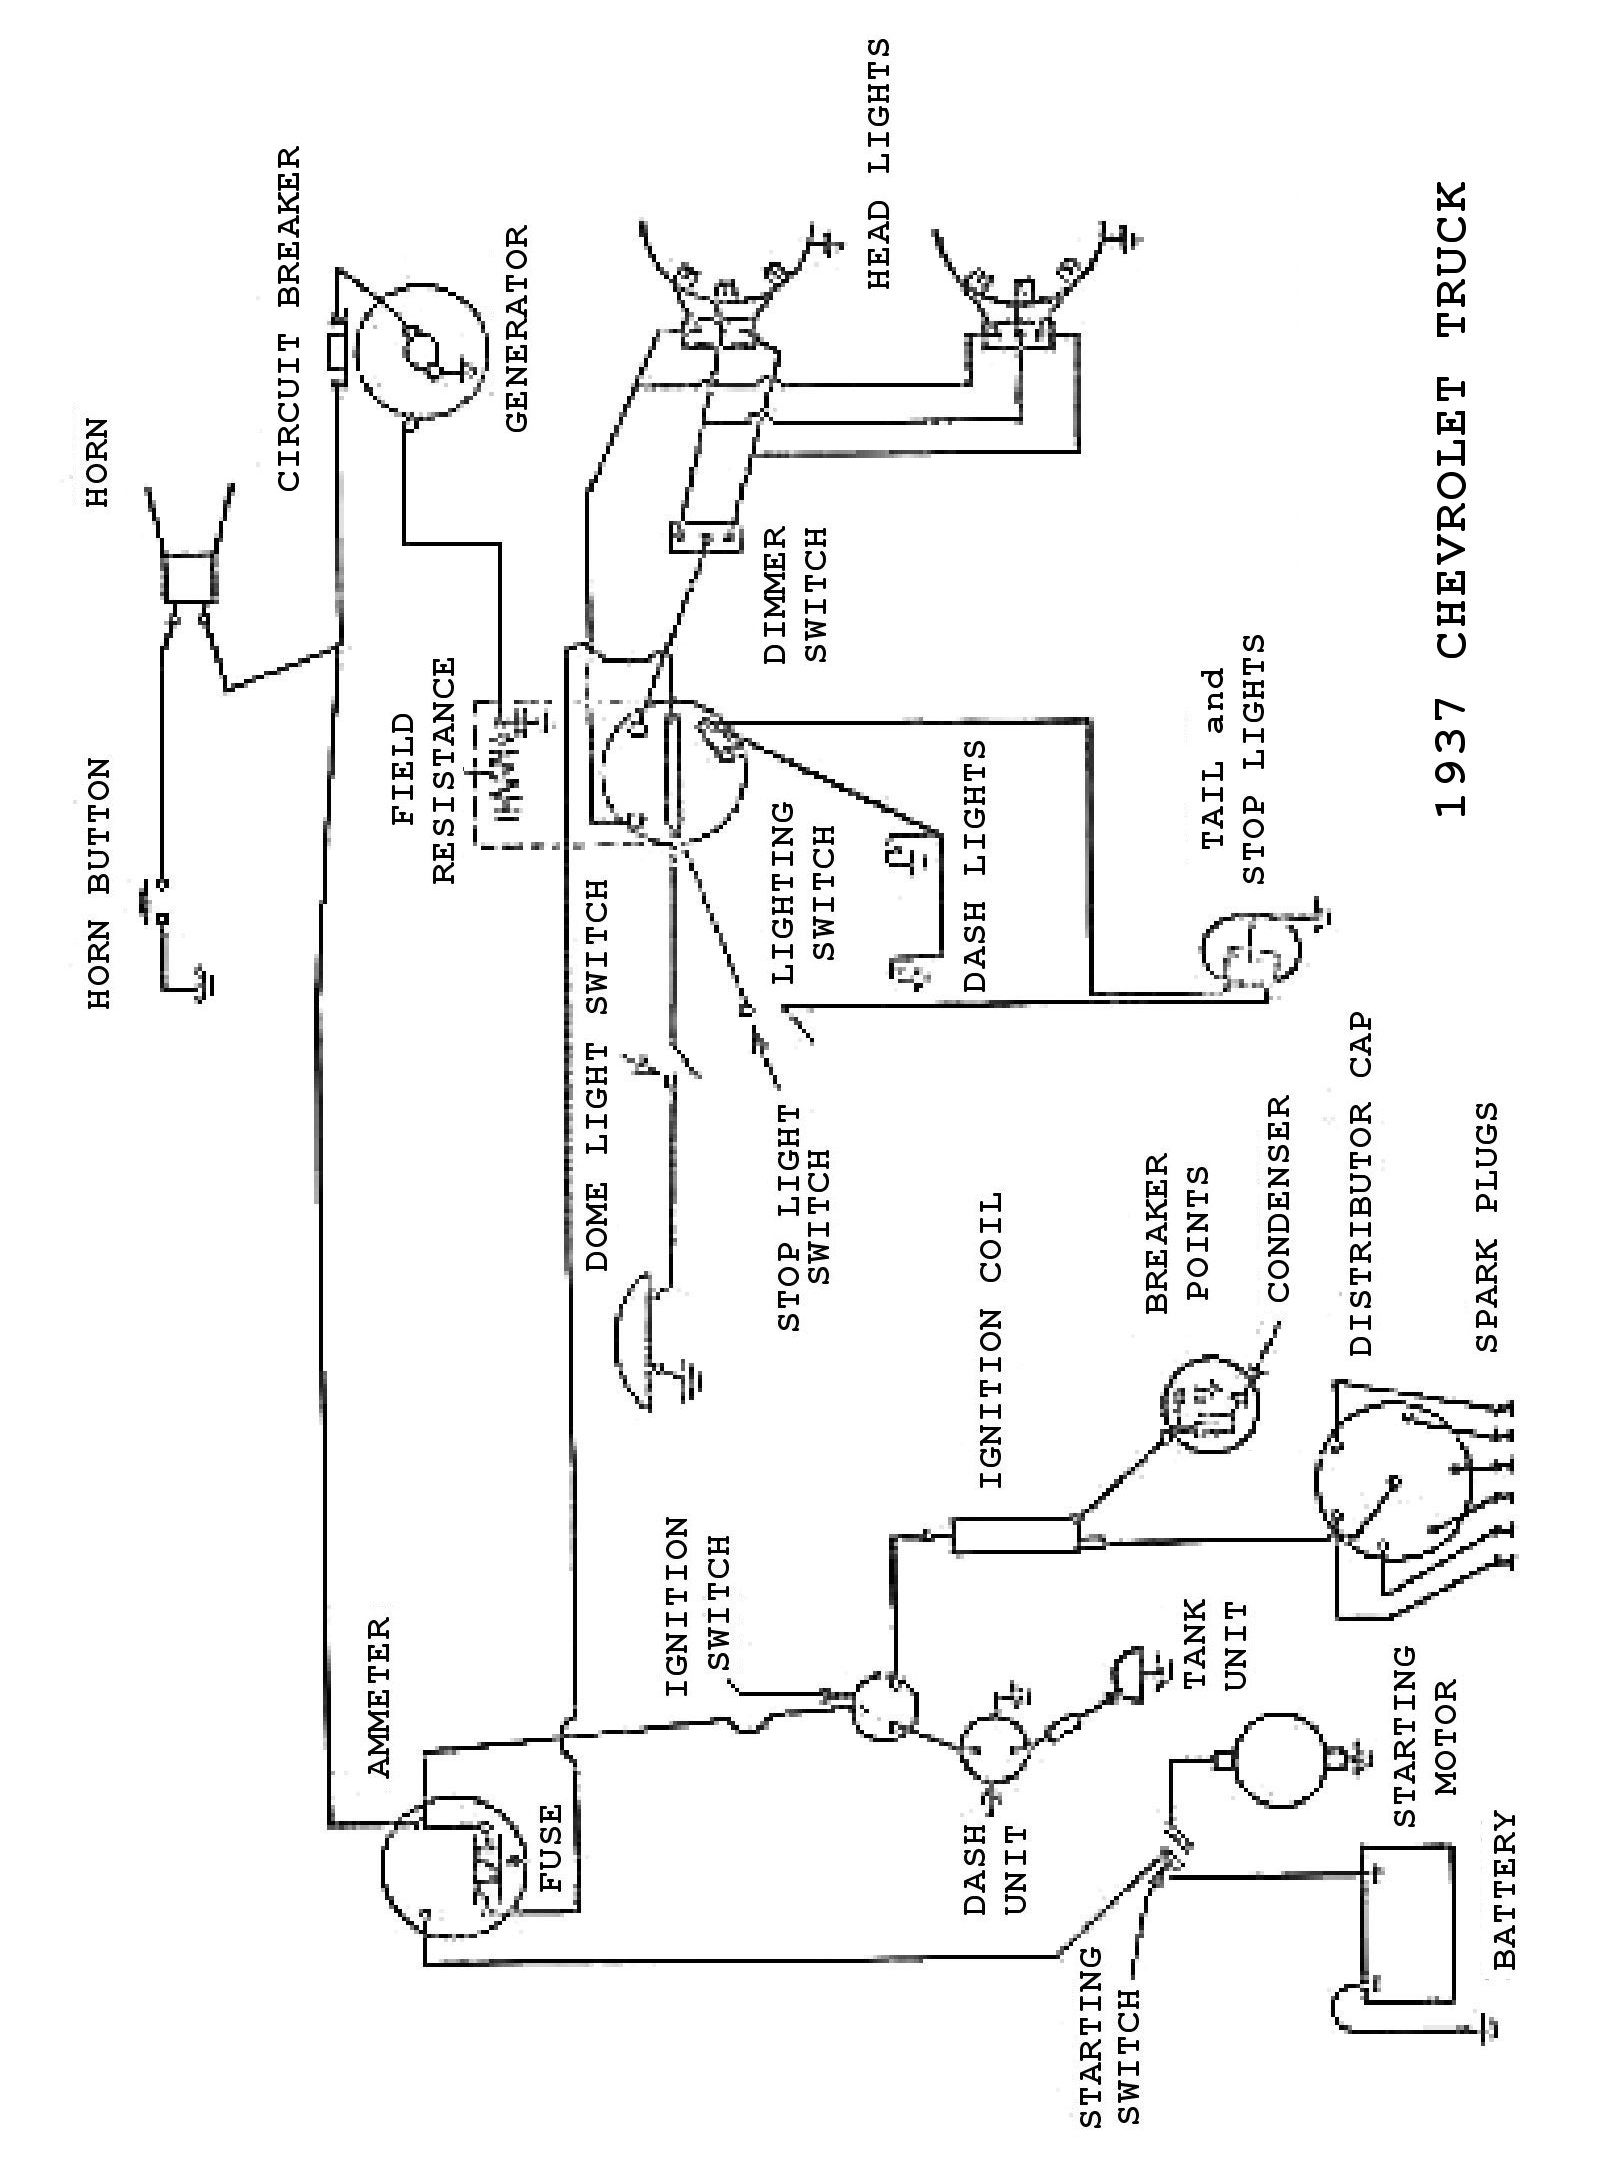 2001 International 4700 Headlight Wiring Diagram Library Electrical Diagrams Chevy Starter 1937 Truck Schematic